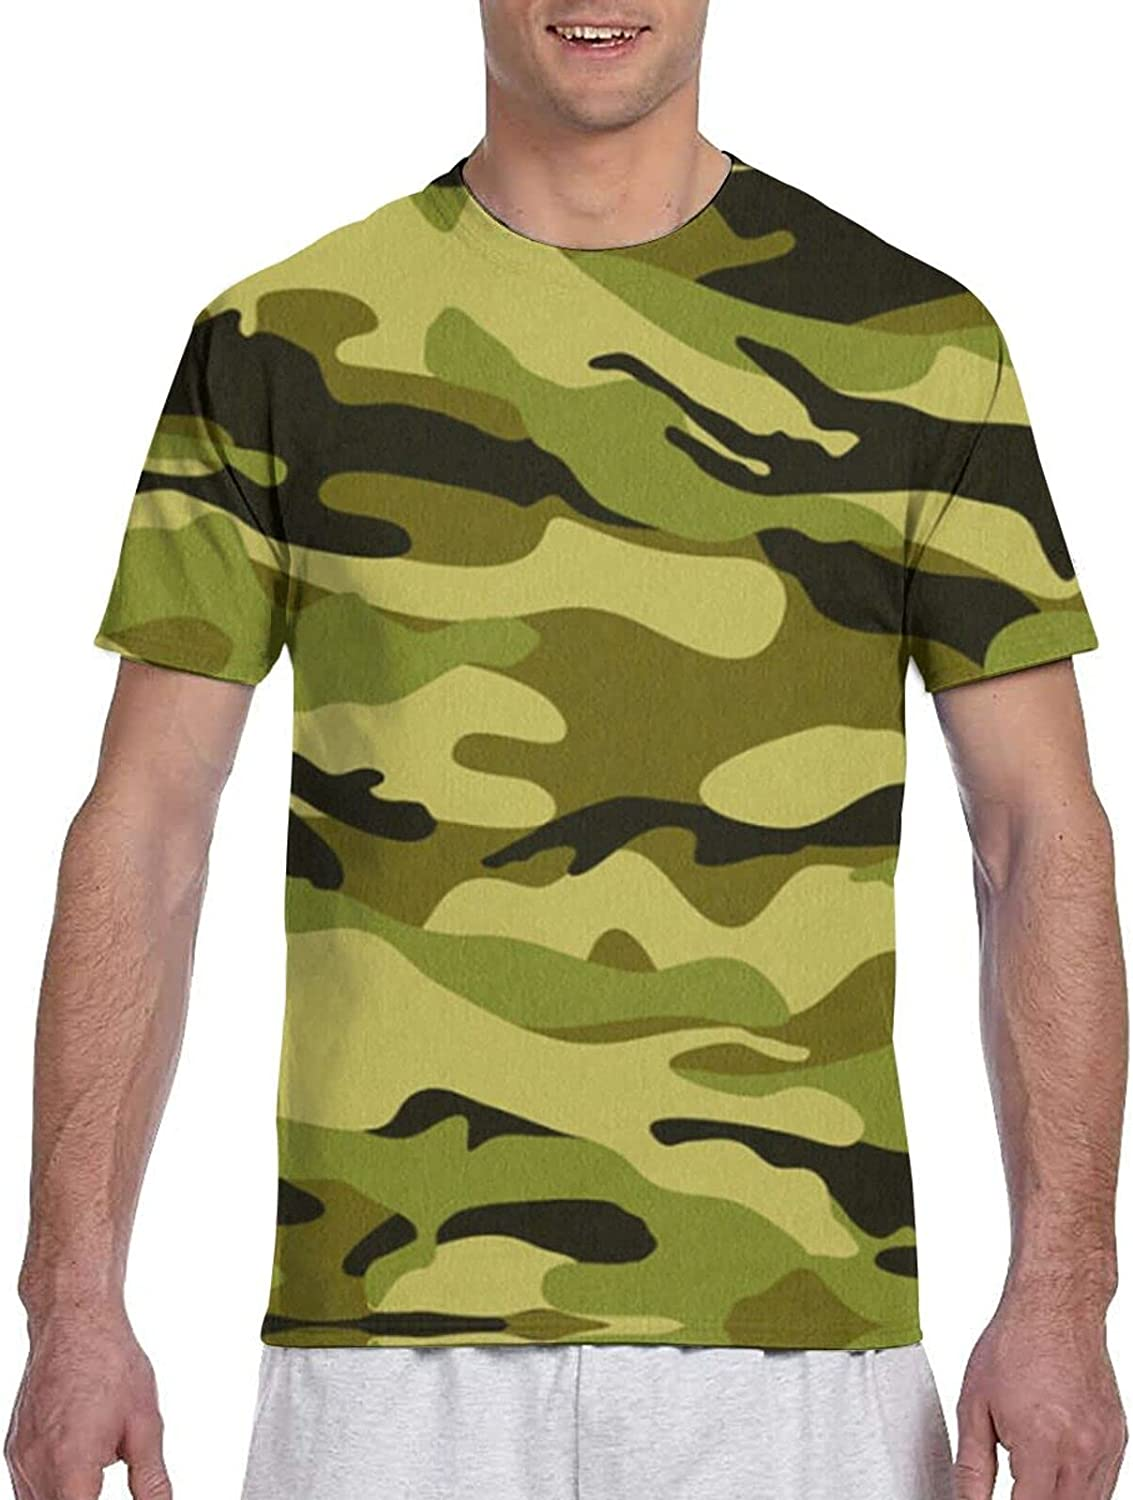 JHCD T-Shirts,3D Printed T-Shirt,Mens Shirts, Suitable for Adult Men Shirt Short Sleeve Casual Blouse